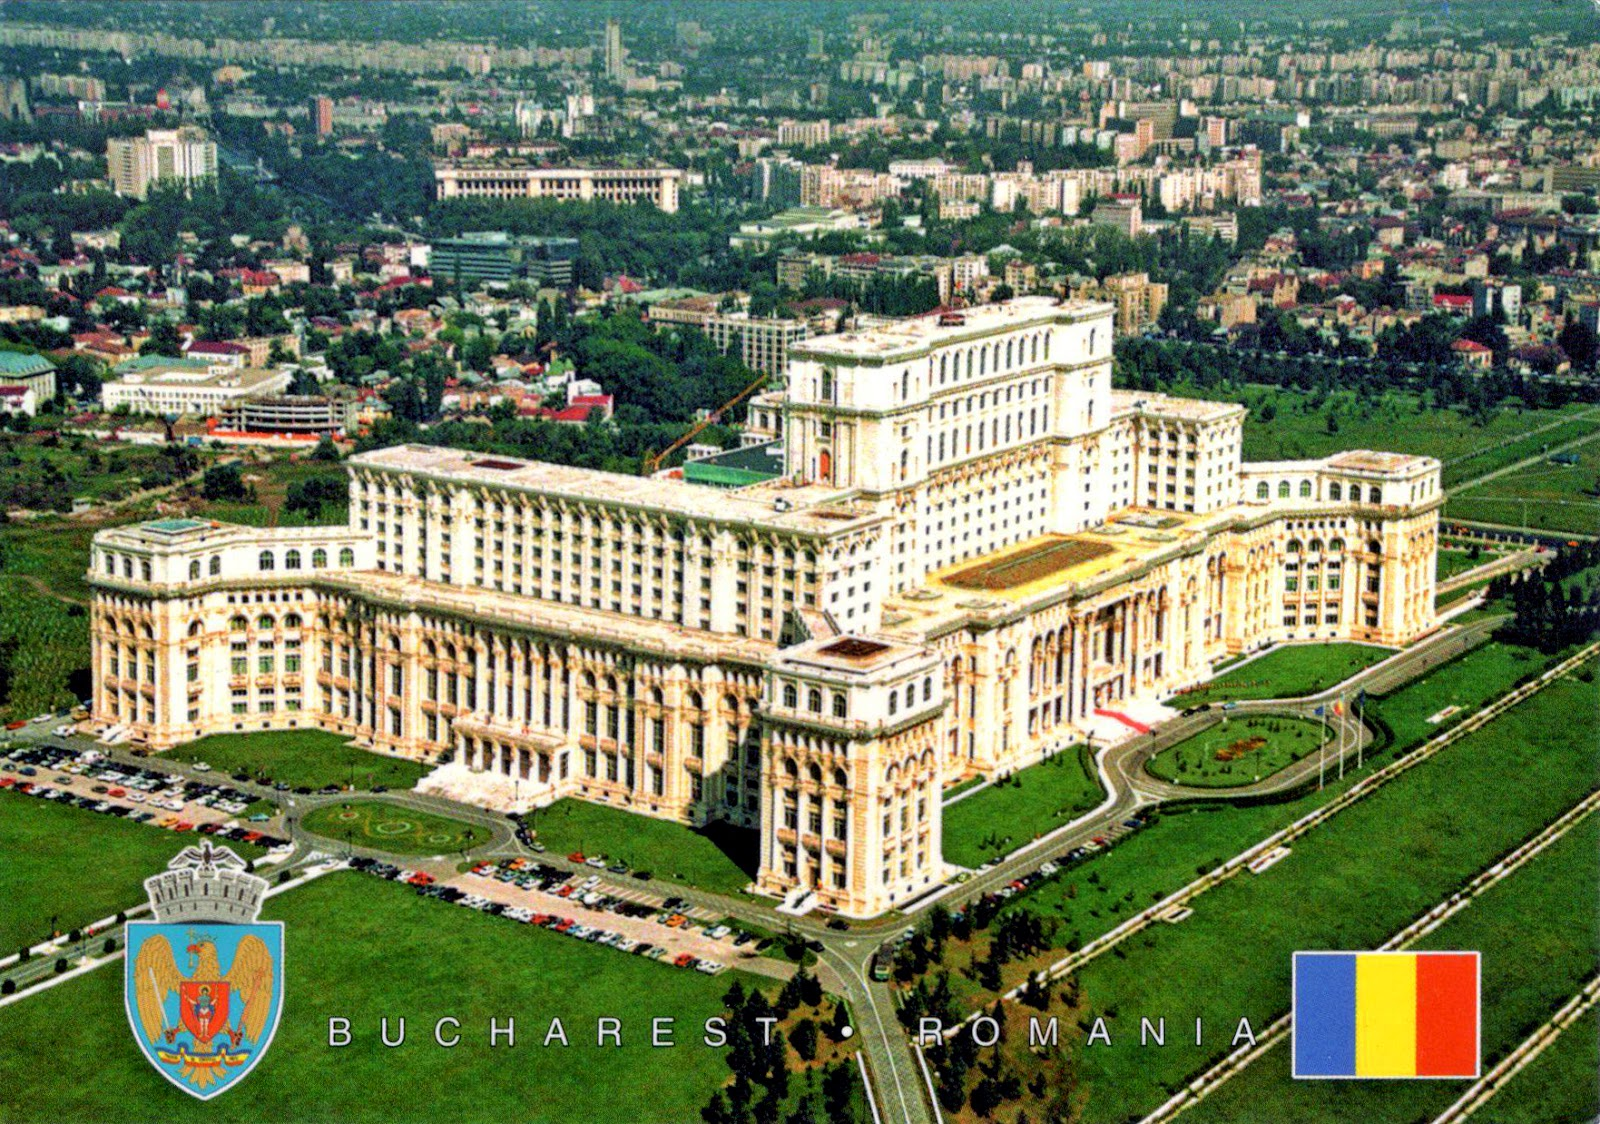 Shu a Is An Otherworldly Town Ruled By Gypsies also Romania likewise City Break In Oradea furthermore Stock Photo Bucharest Skyline Image28178510 in addition Garden Gnomes And Hookers. on houses in bucharest